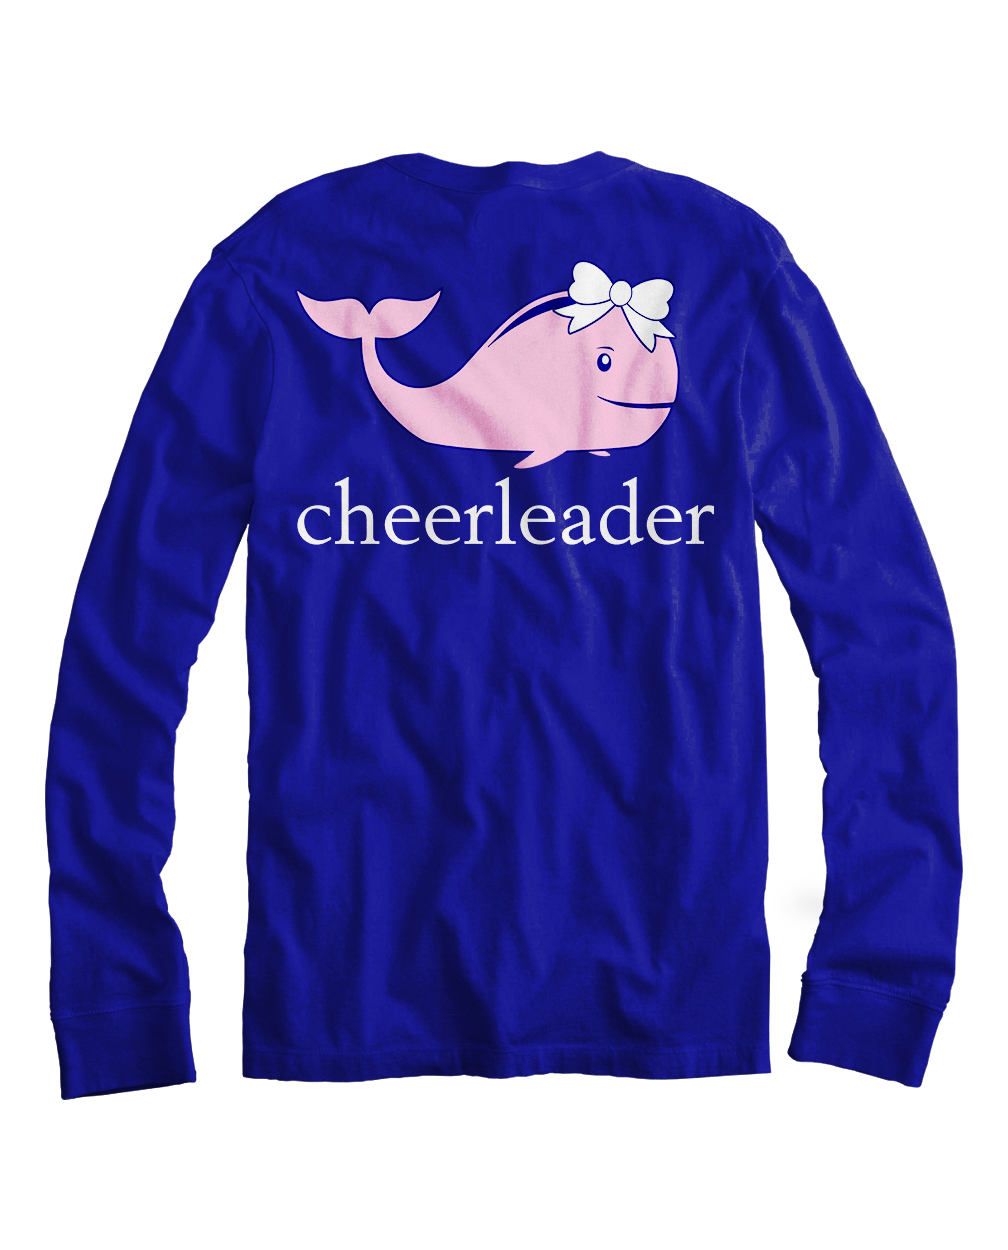 Cheering Whale in Long Sleeve Navy T-Shirt